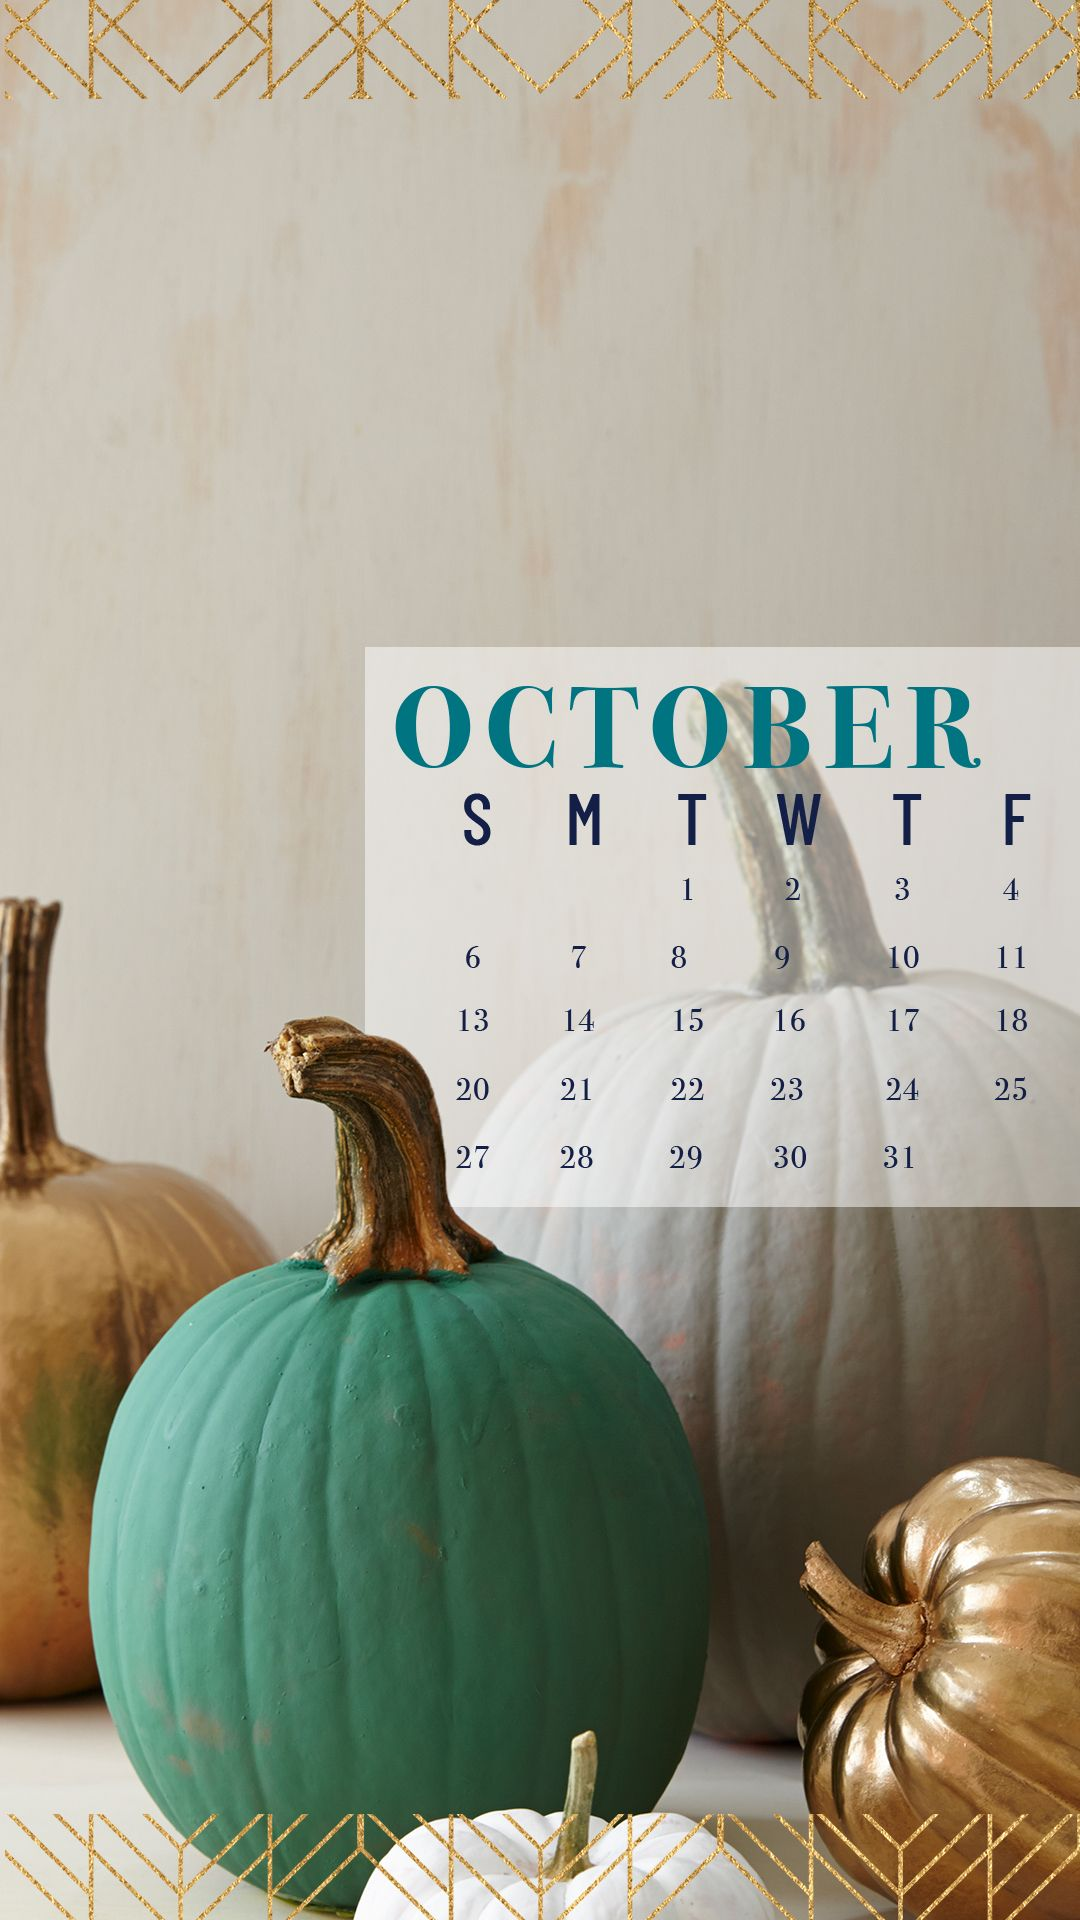 Screenshot our October Wallpaper to your phone to keep track of your calendar this month. #octoberwallpaper